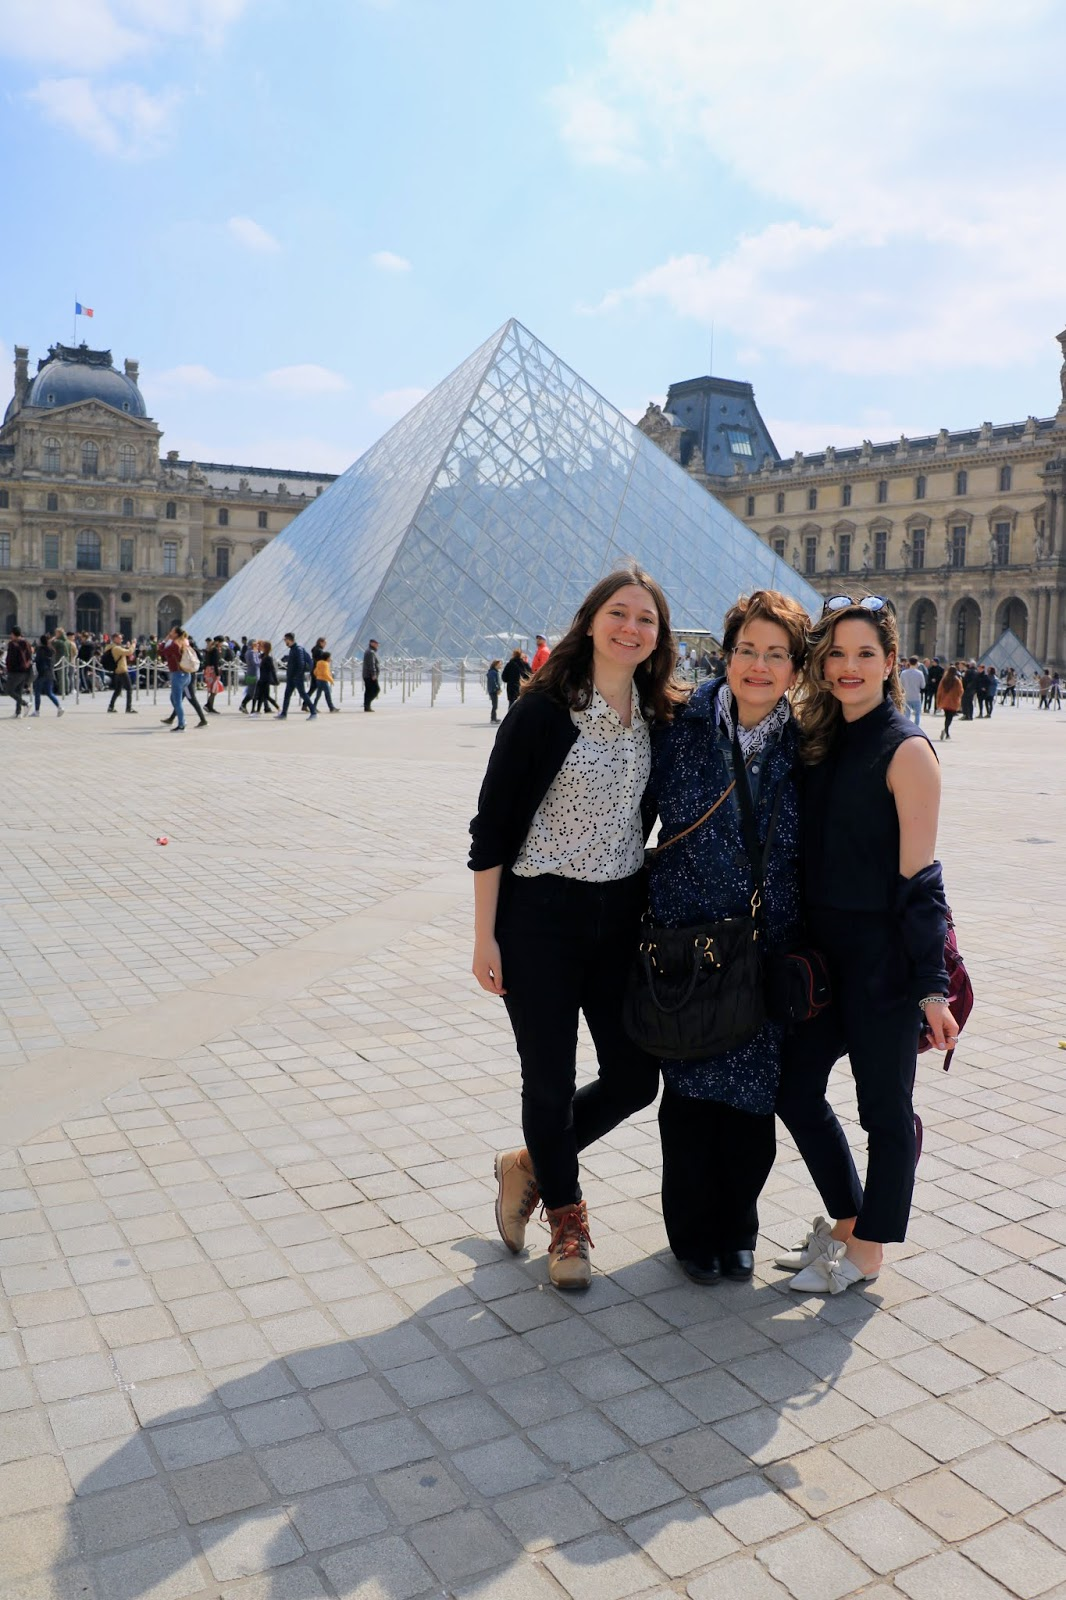 Louvre glass pyramid blogger pics